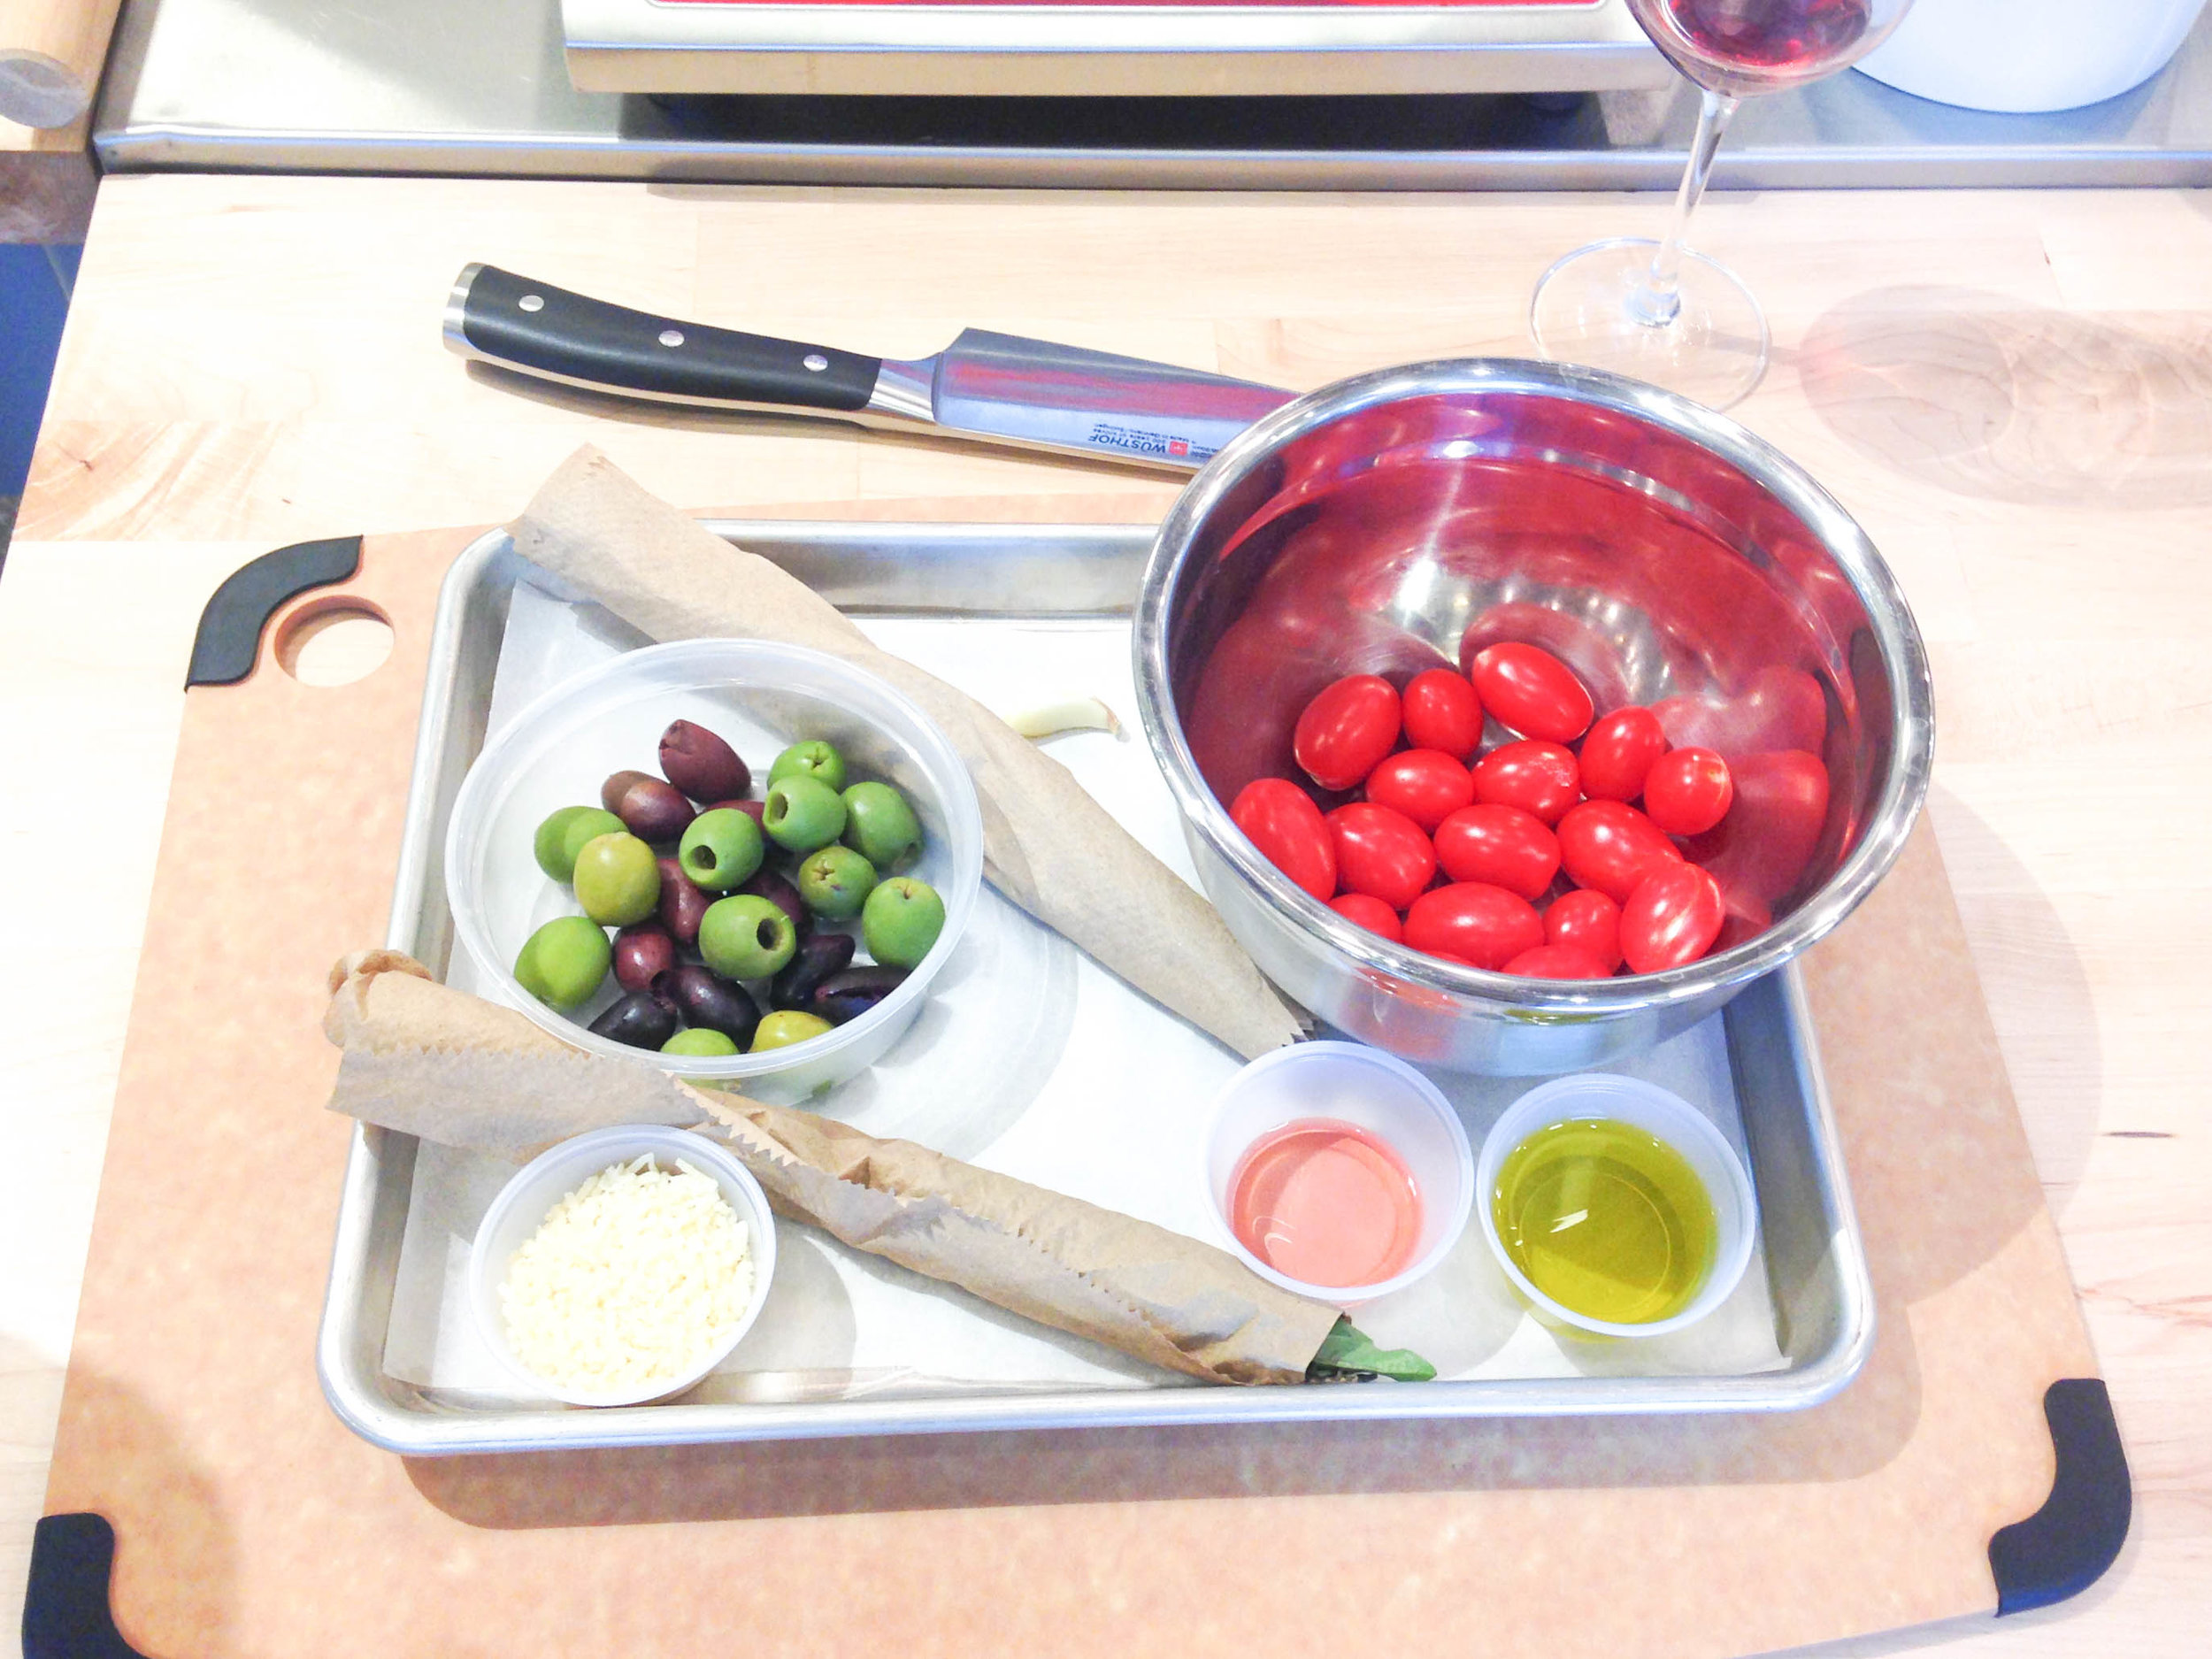 5 Things I learned from the cooking class at Sur La Table!